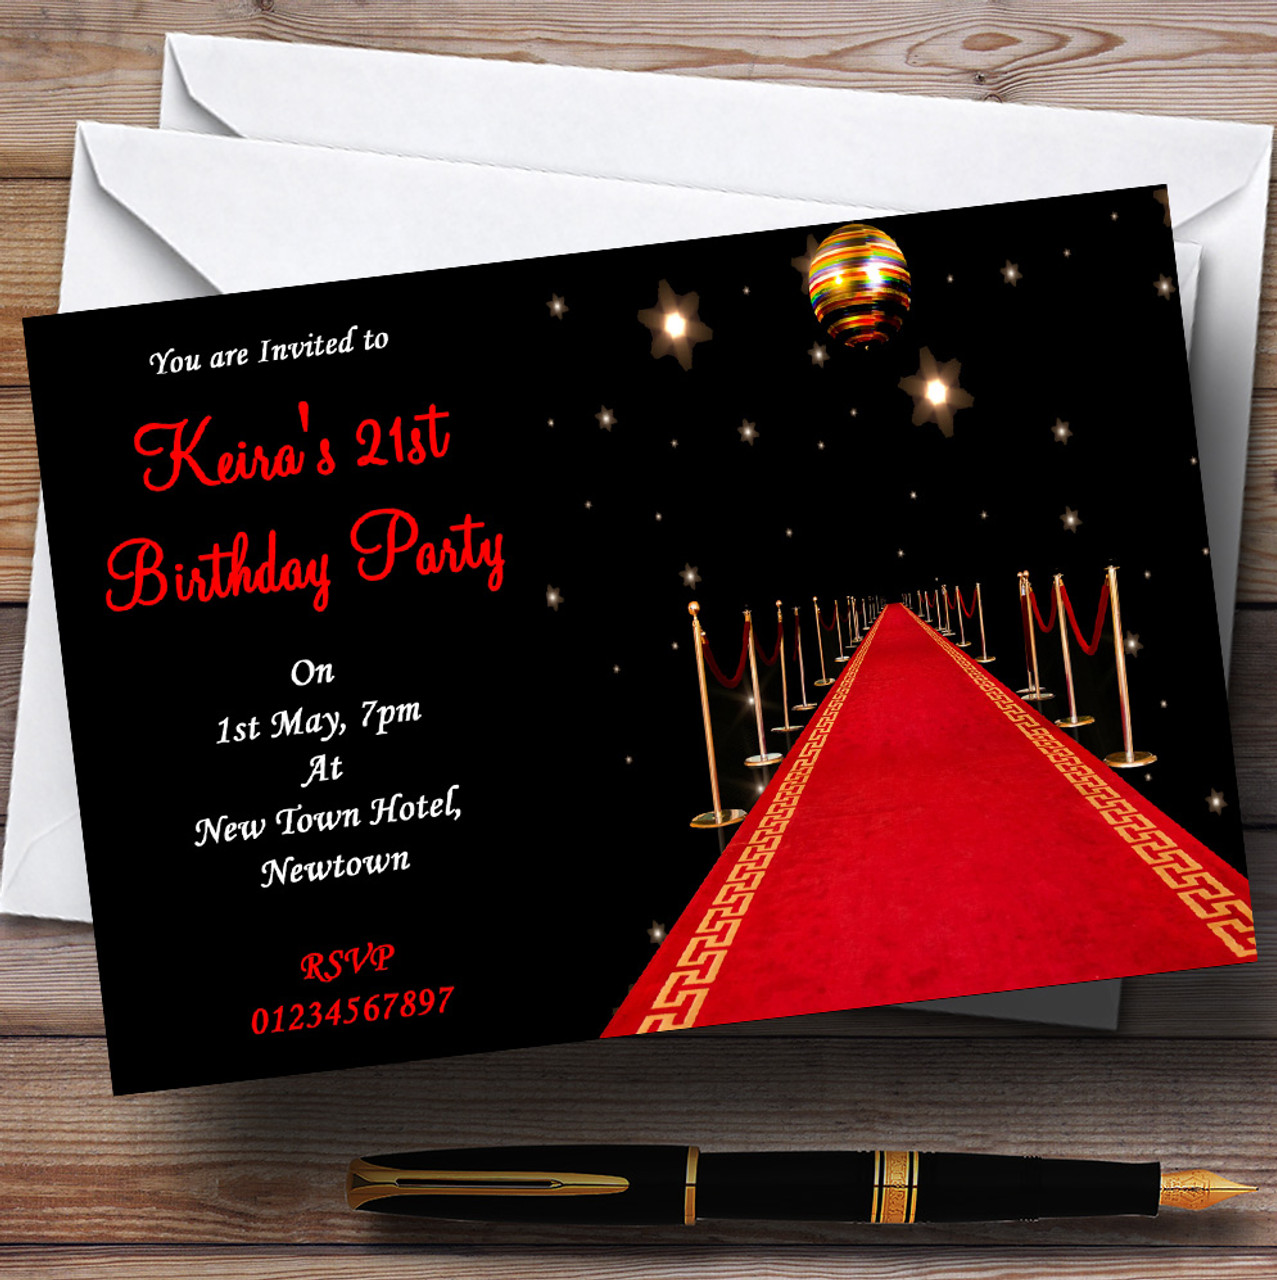 Red Carpet Vip Personalised Party Invitations - The Card Zoo